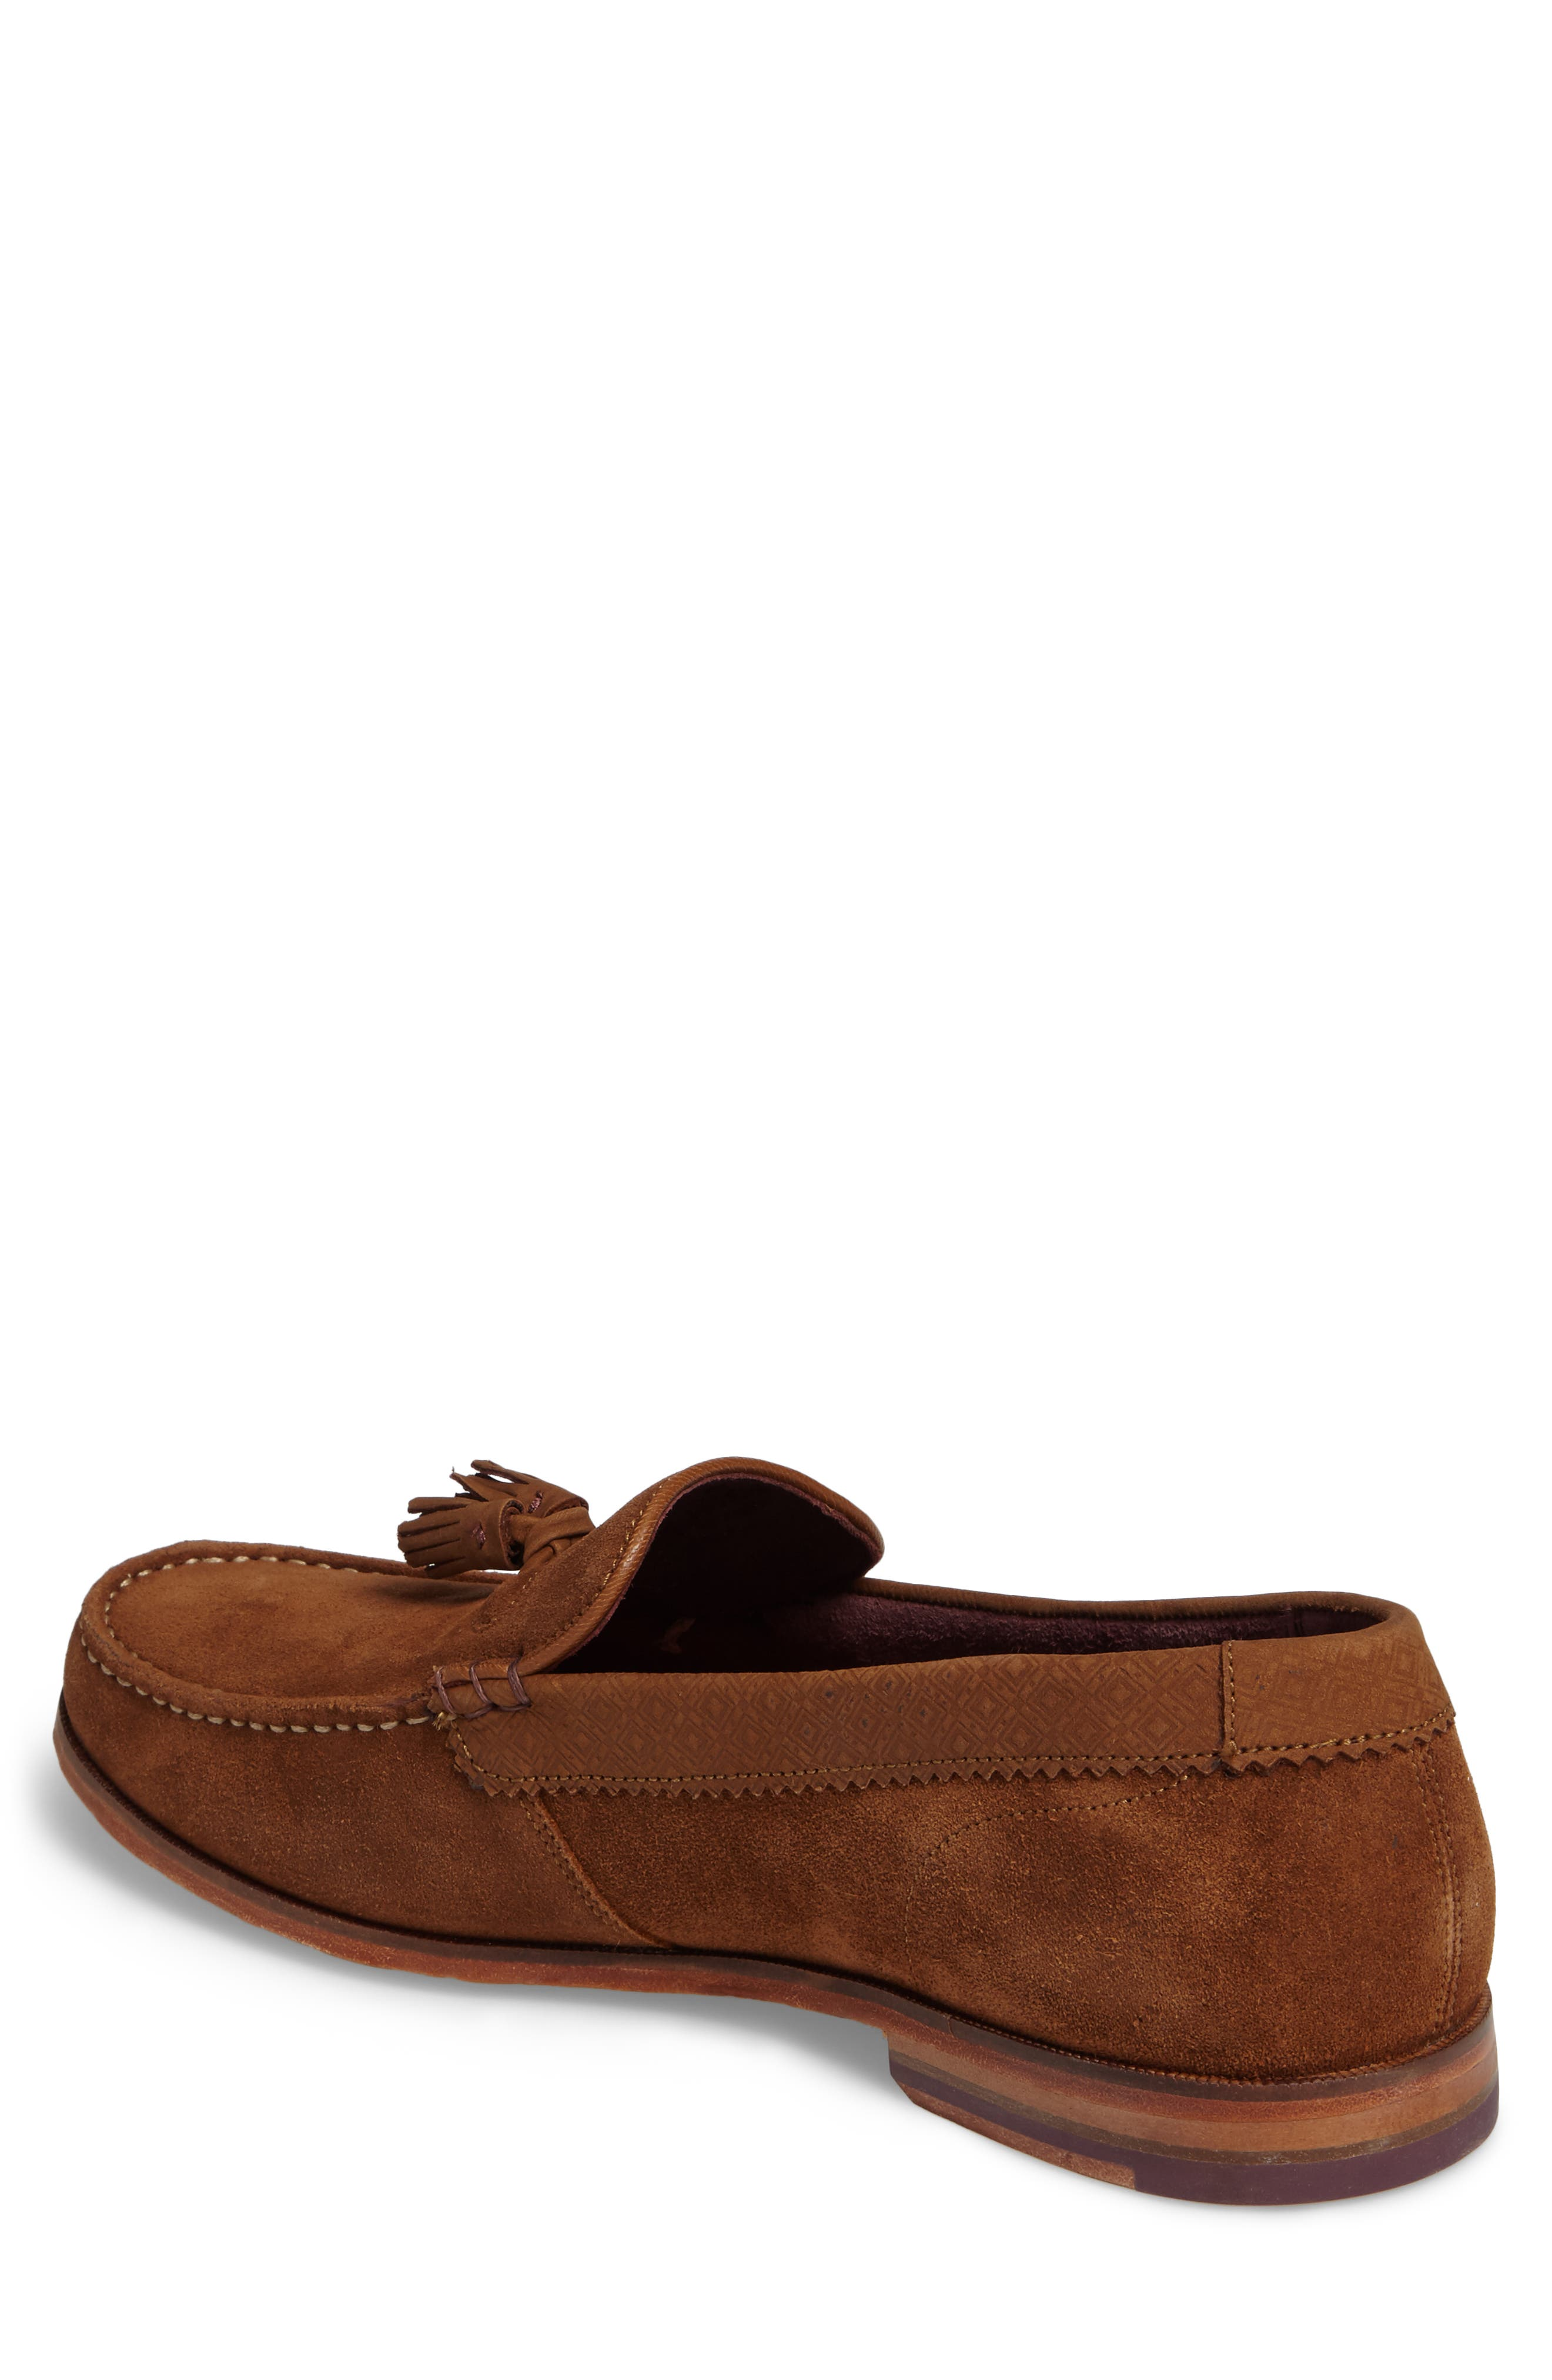 Dougge Tassel Loafer,                             Alternate thumbnail 8, color,